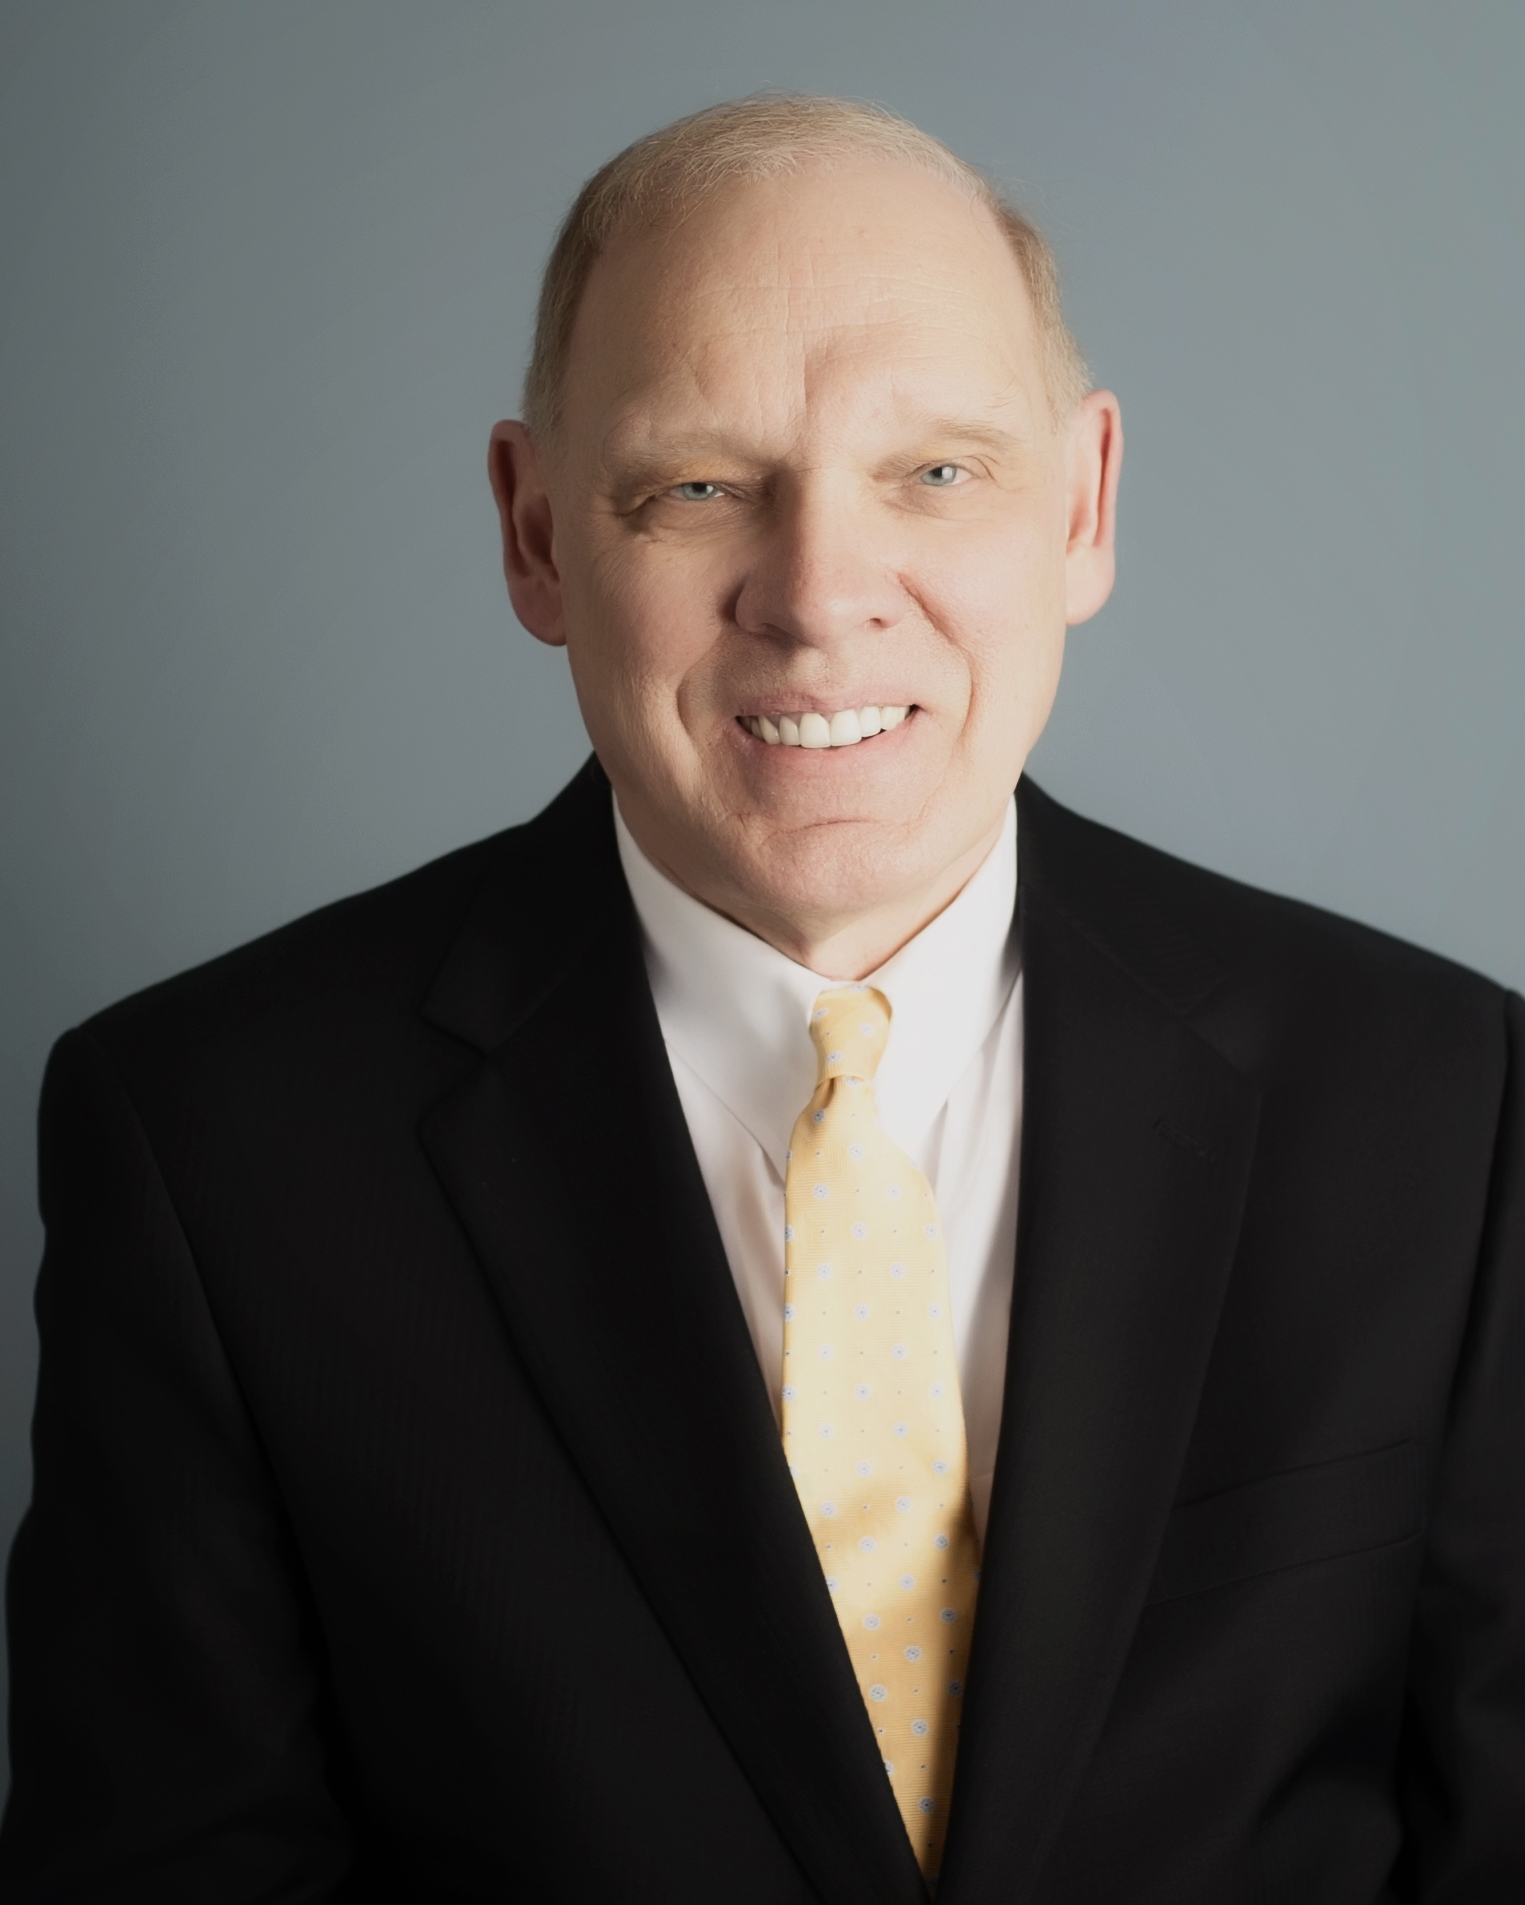 Dr. Kenneth Voss